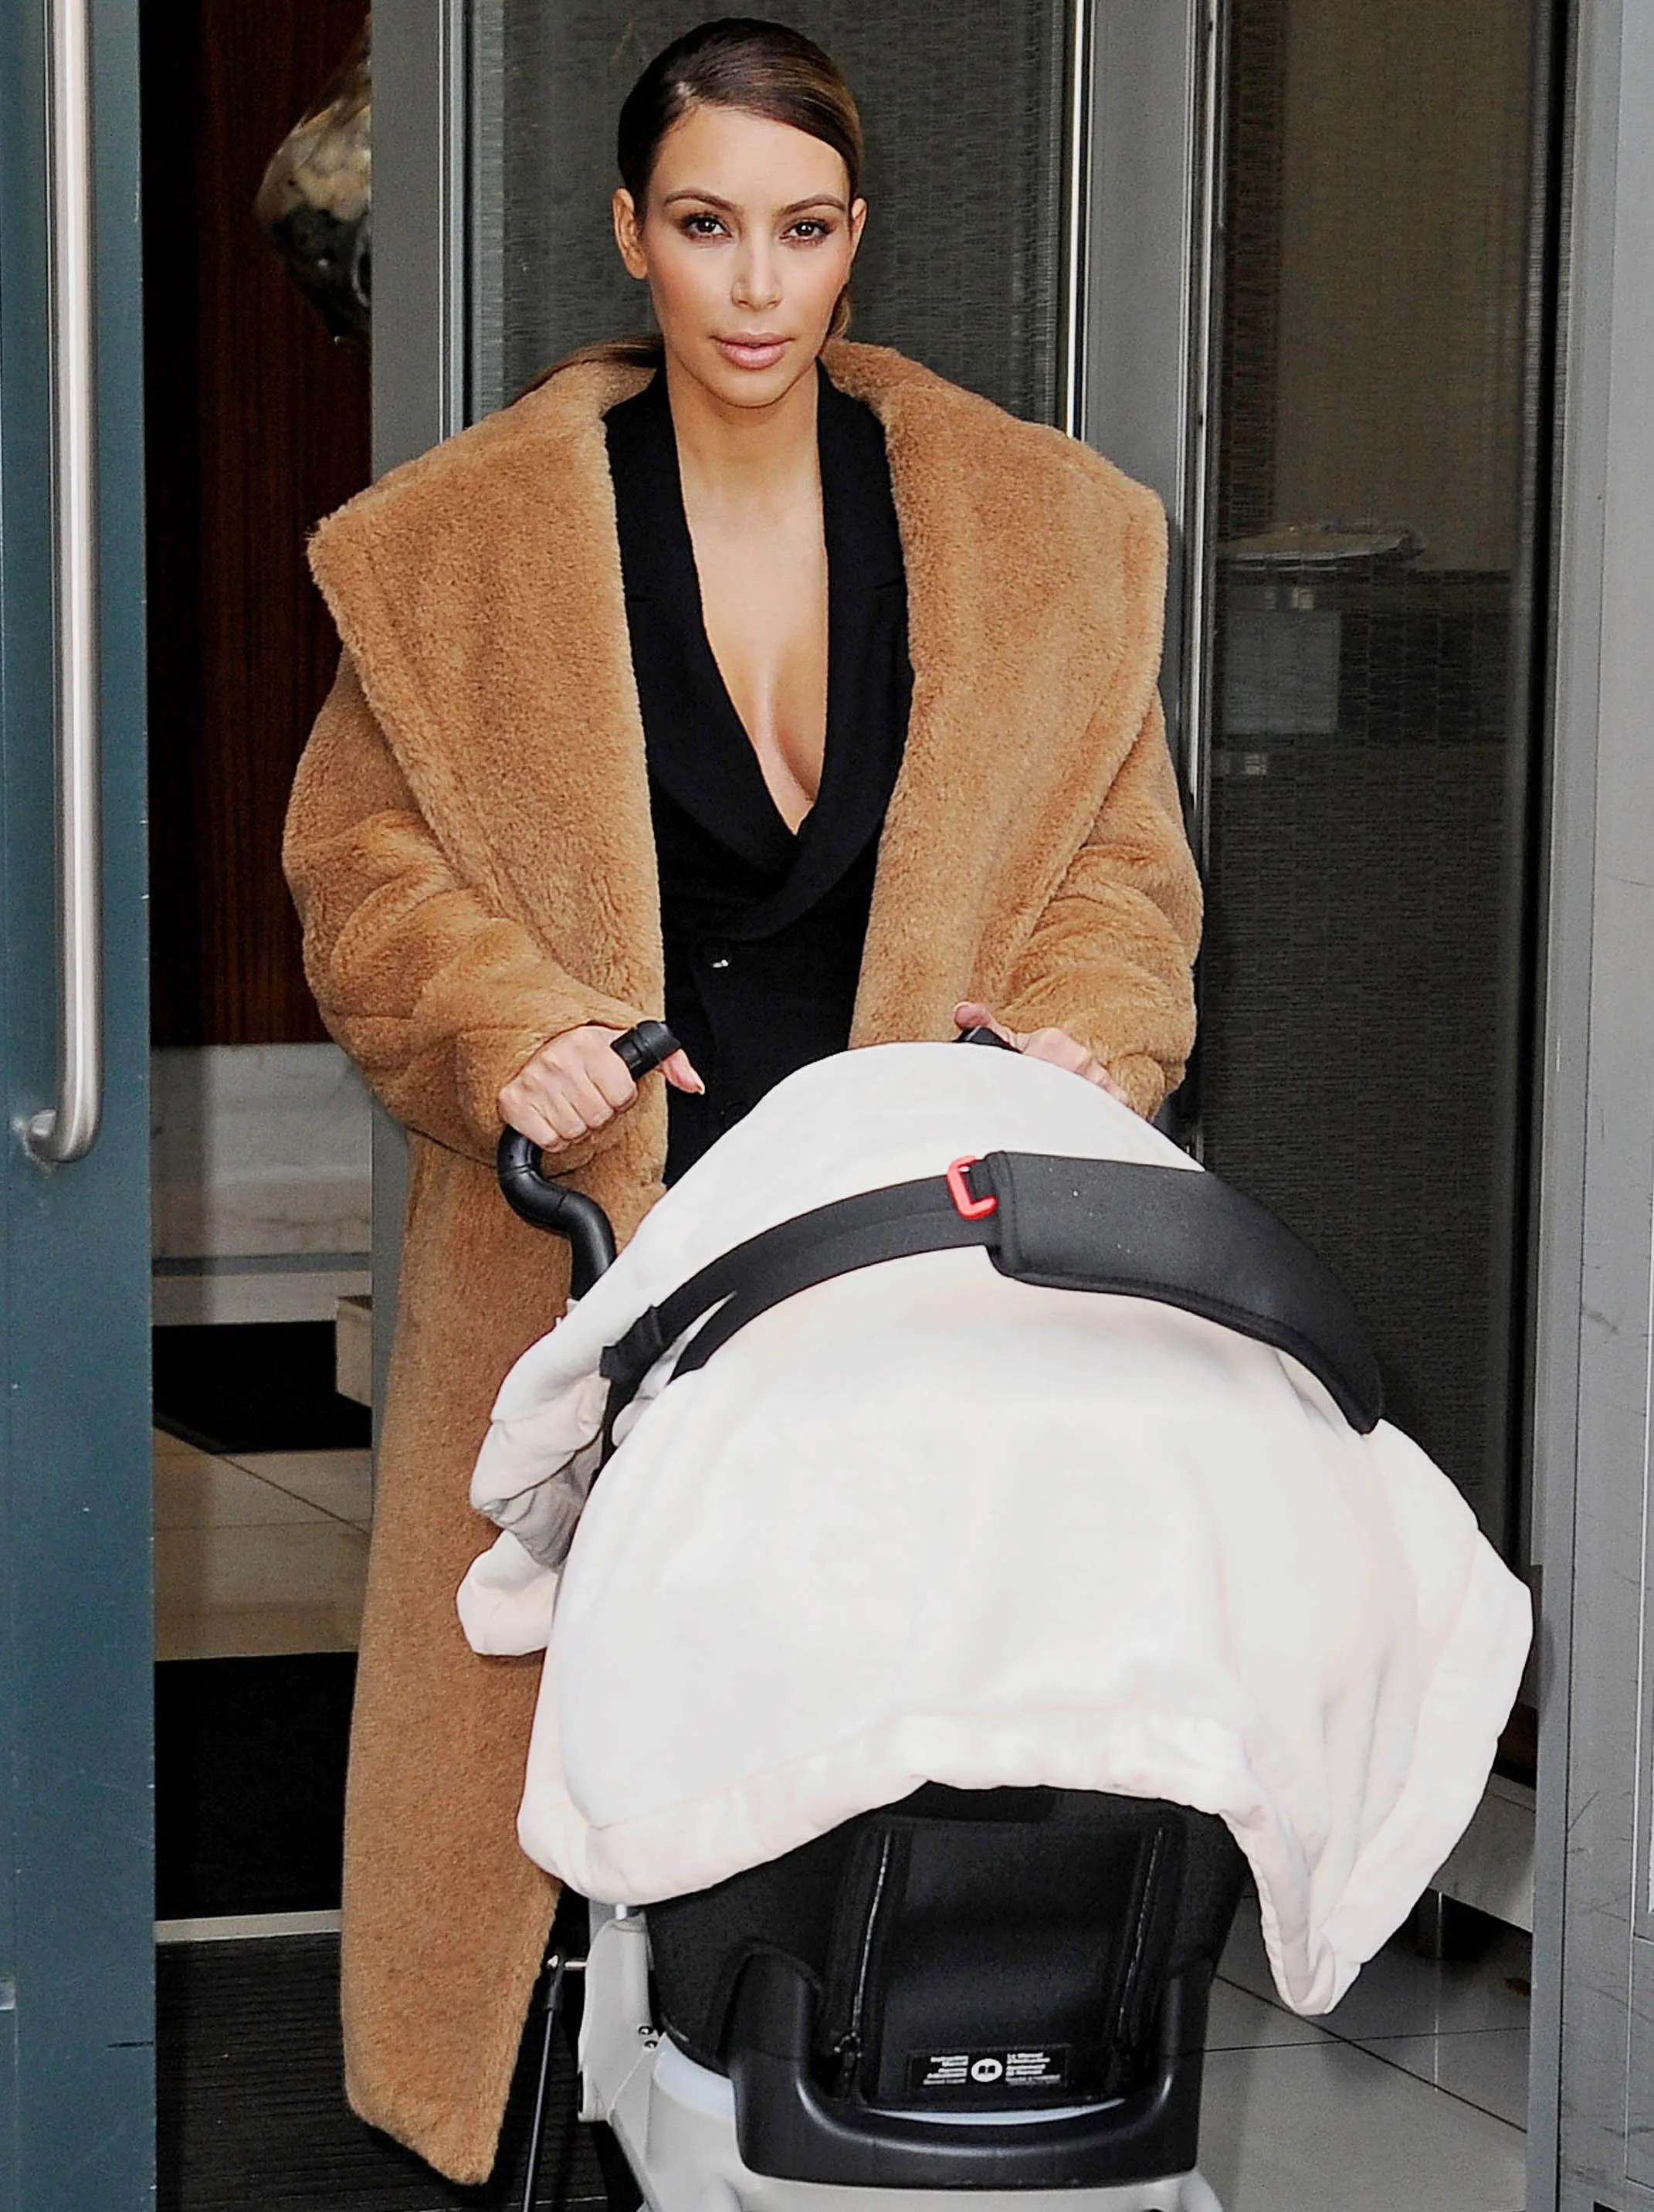 Doing the mom thing: Kardashian pushes baby North in a stroller in Manhattan on Nov. 19, 2013.